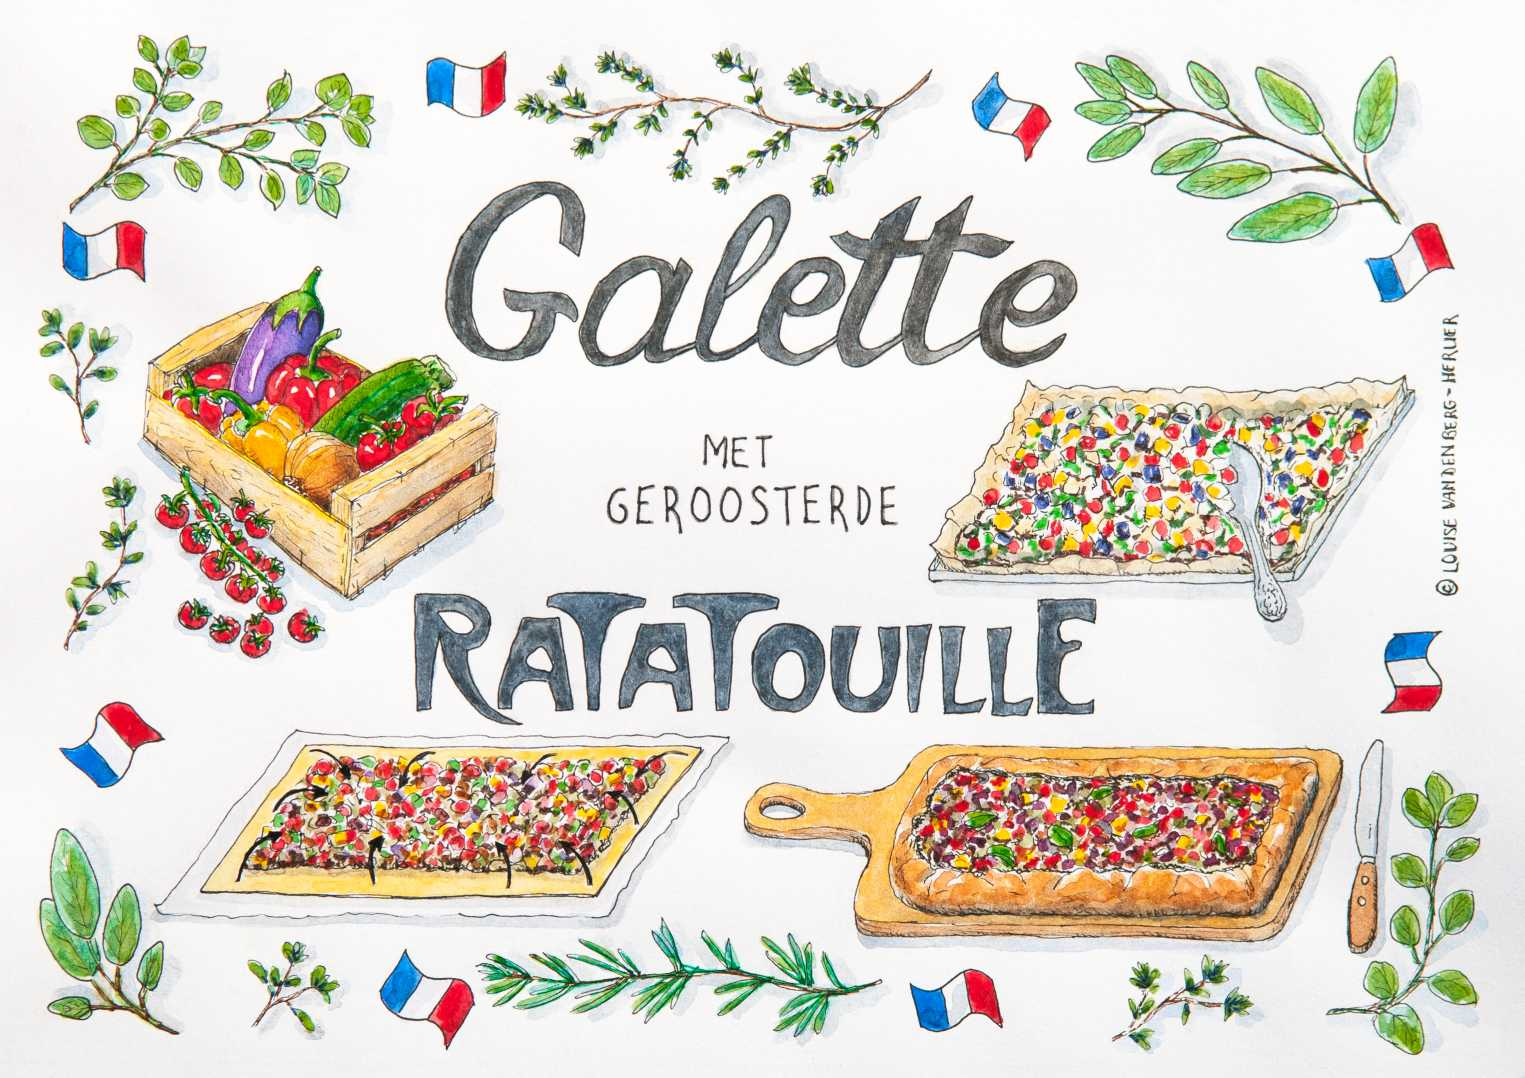 galette met ratatouille illustratie